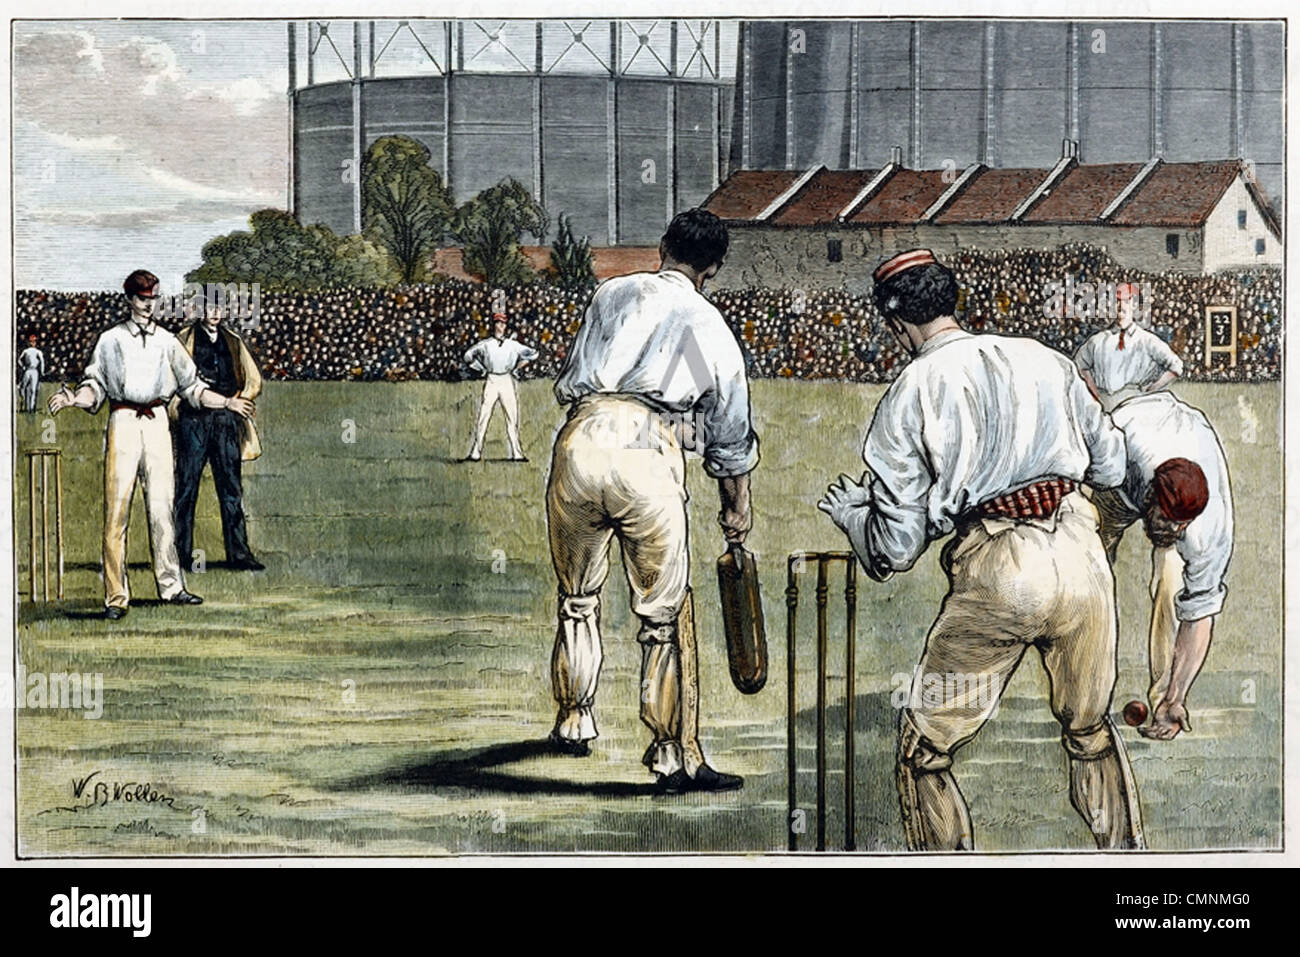 1882 CRICKET TEST MATCH at the Oval from left Read, Peate, Bannerman batting, Lyttleton and W.G. Grace - Stock Image